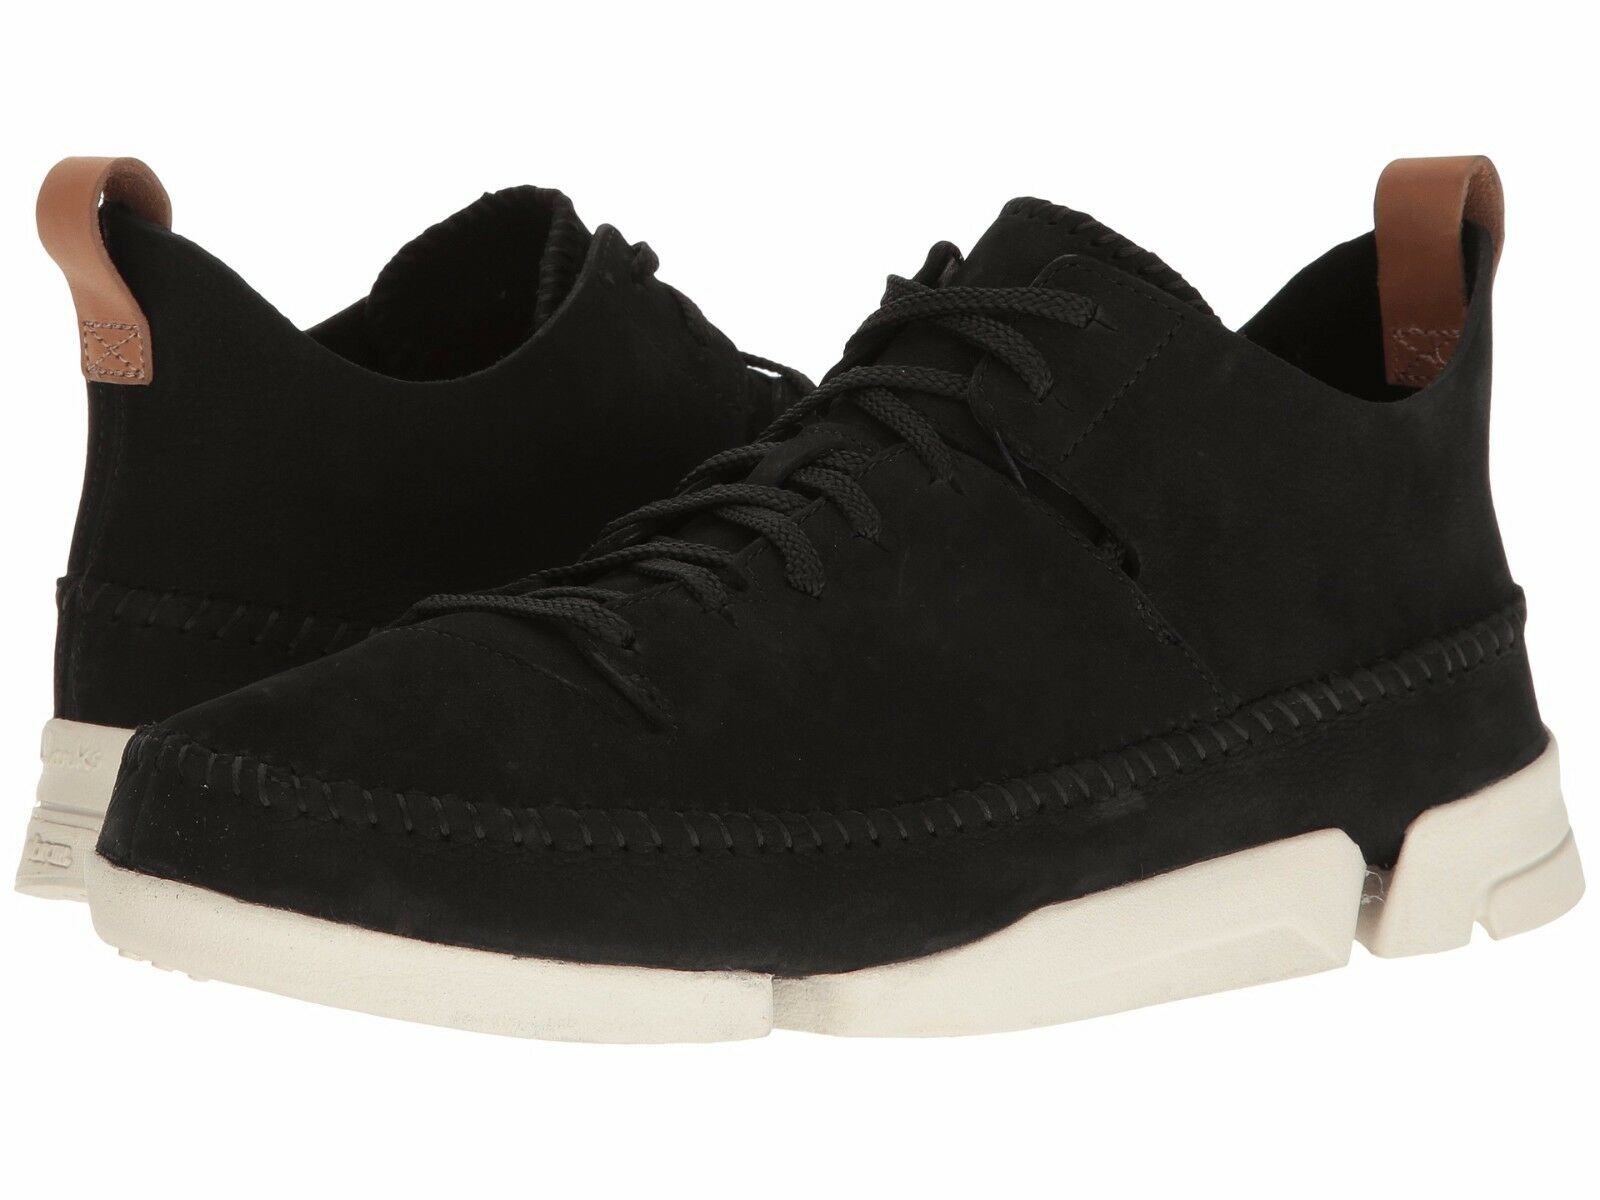 Men's shoes Clarks Trigenic Flex Suede Lace Up Sneaker 07366 Black Nubuck New